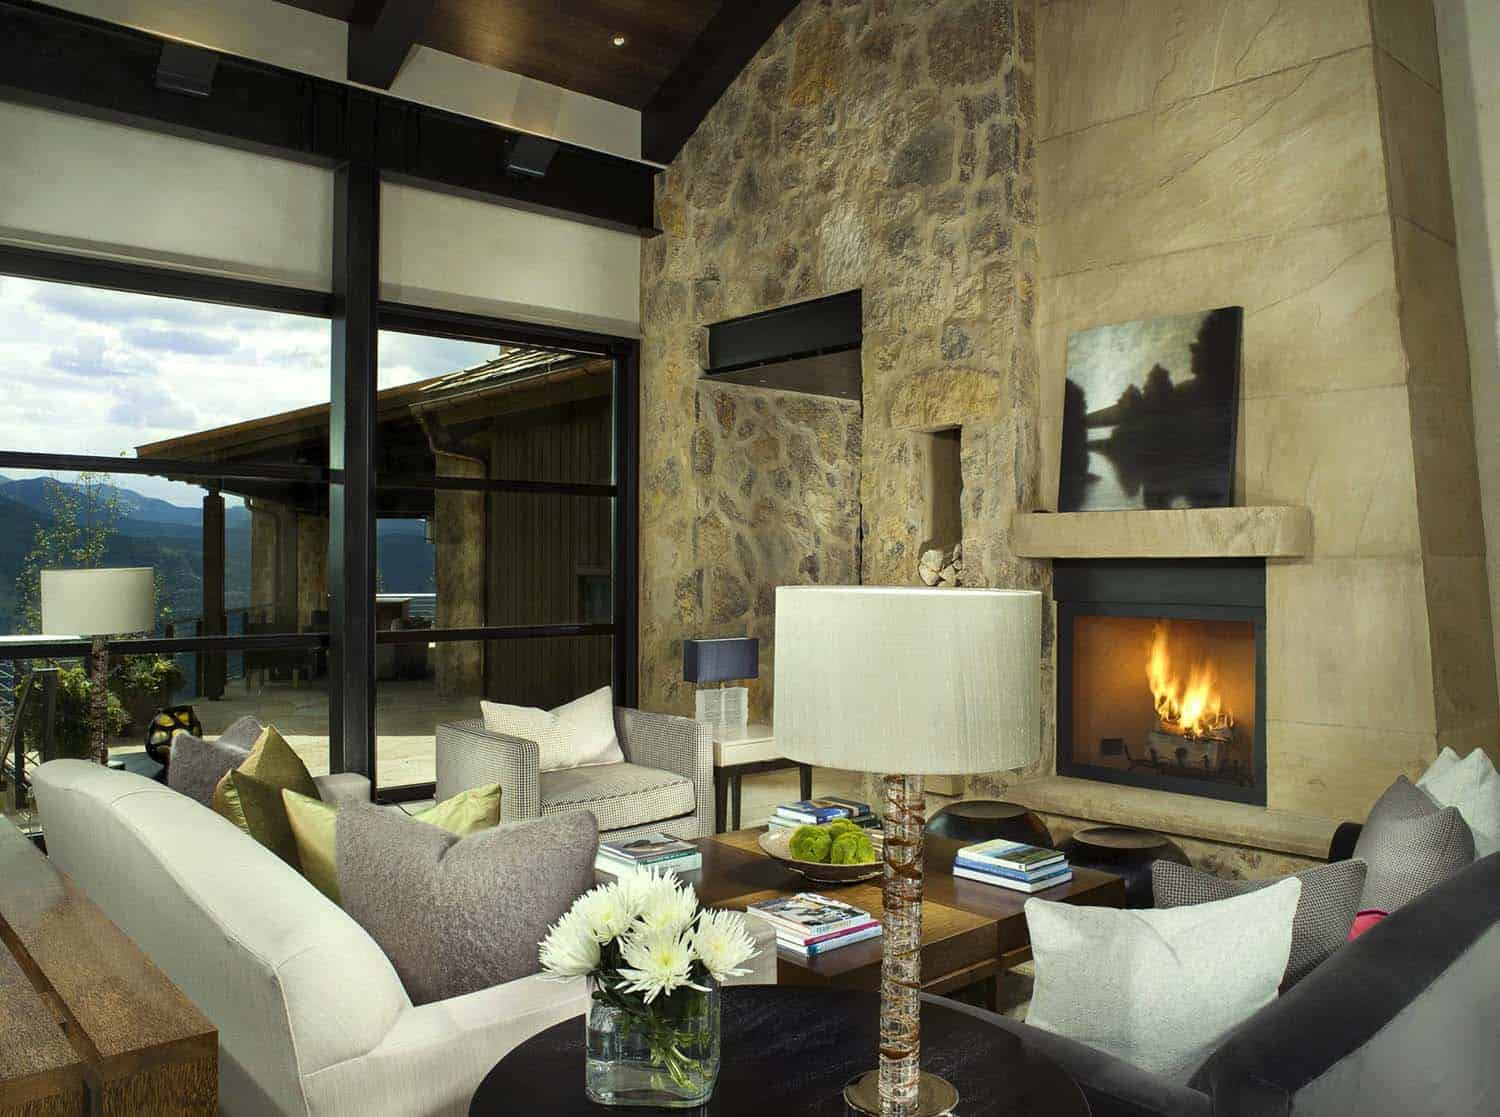 Luxury Modern Mountain Retreat-Slifer Designs-01-1 Kindesign